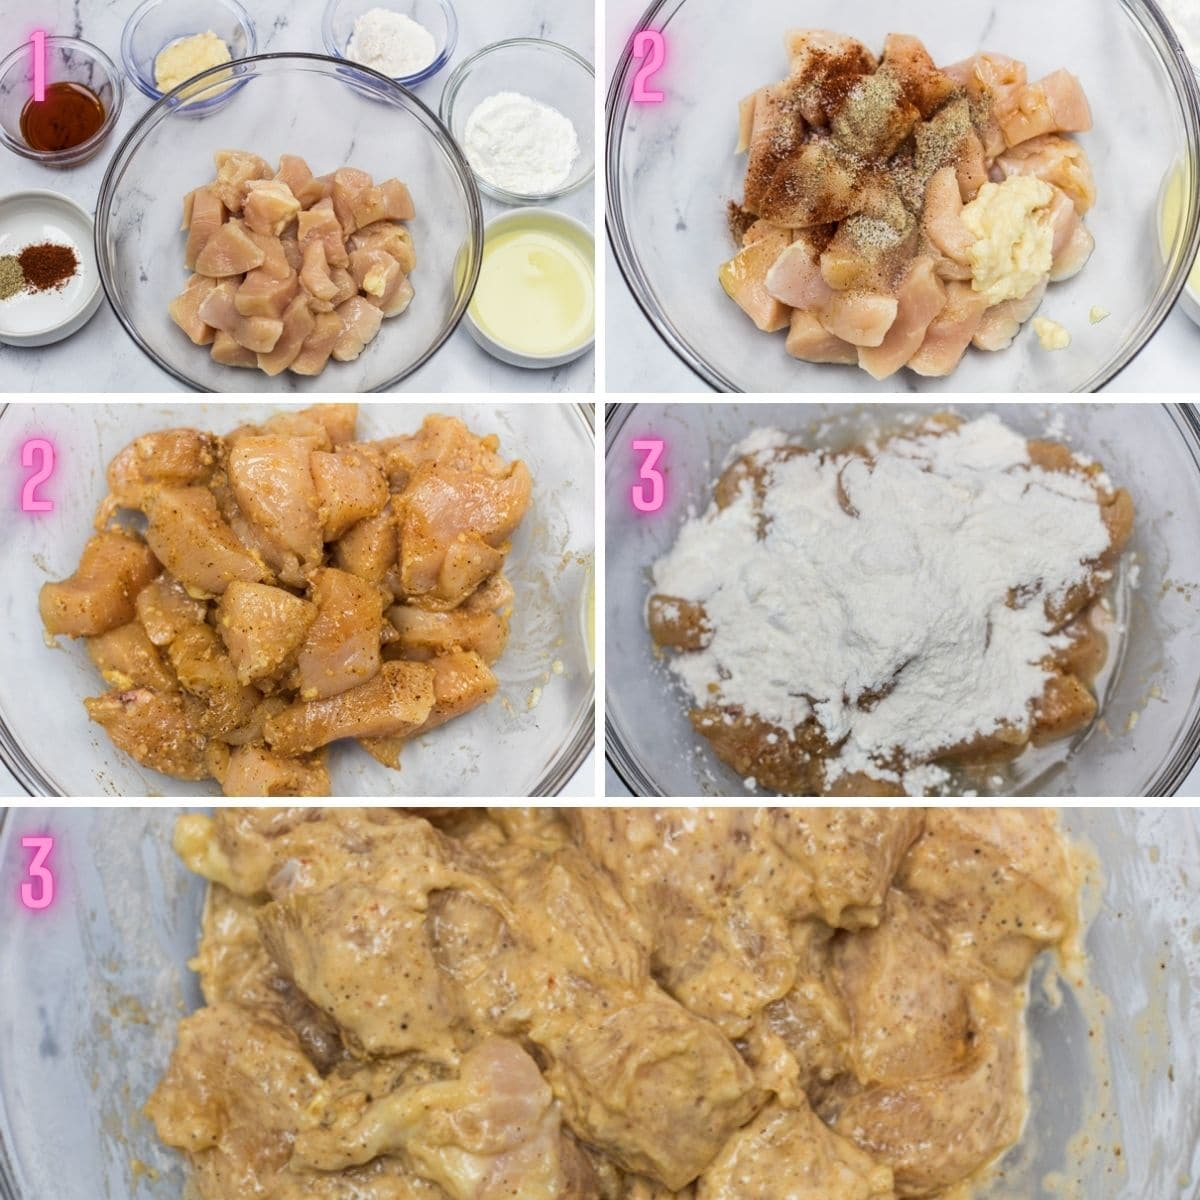 5 step by step photos of marinating the chicken.